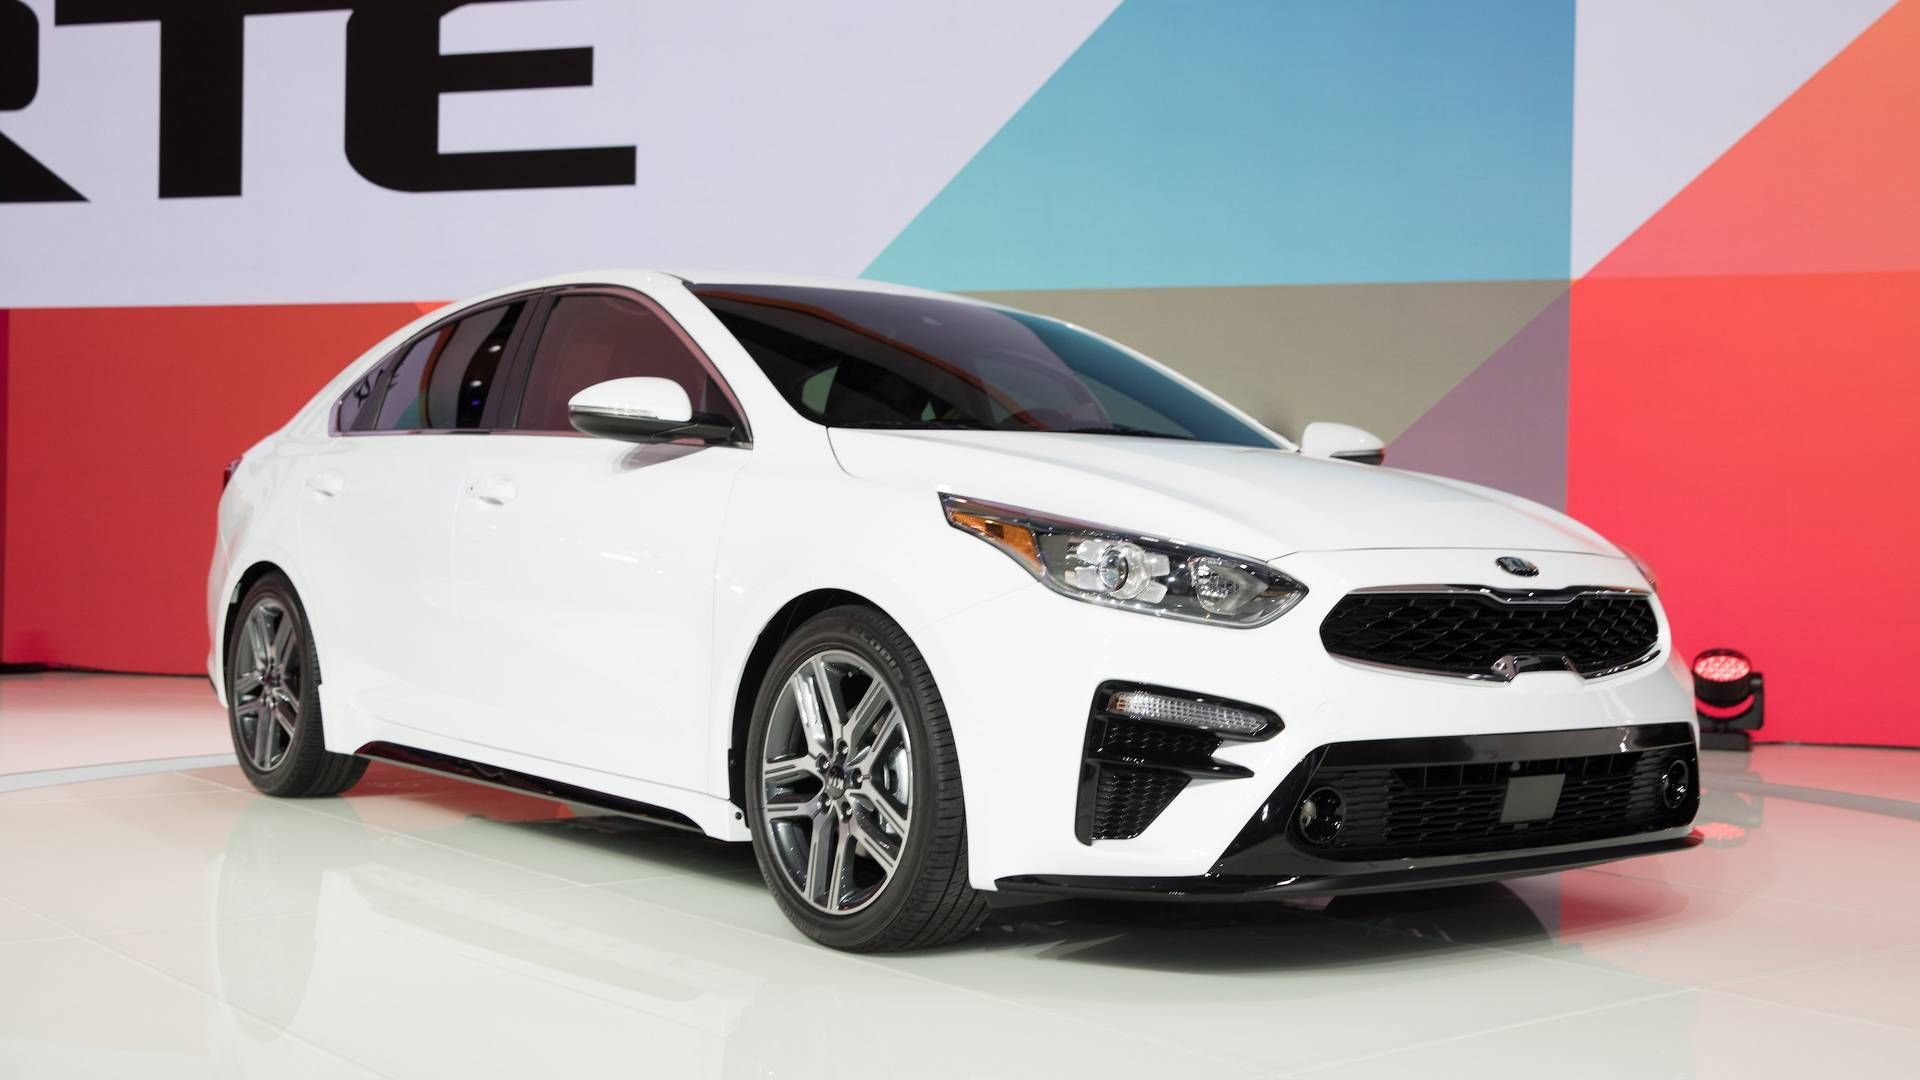 See Models And Pricing As Well As Photos And Videos About Kia Forte Lx 2020 We Reviews The Kia Forte Lx 2020 Specs Where Consumers Ca Kia Forte Kia Parts Kia